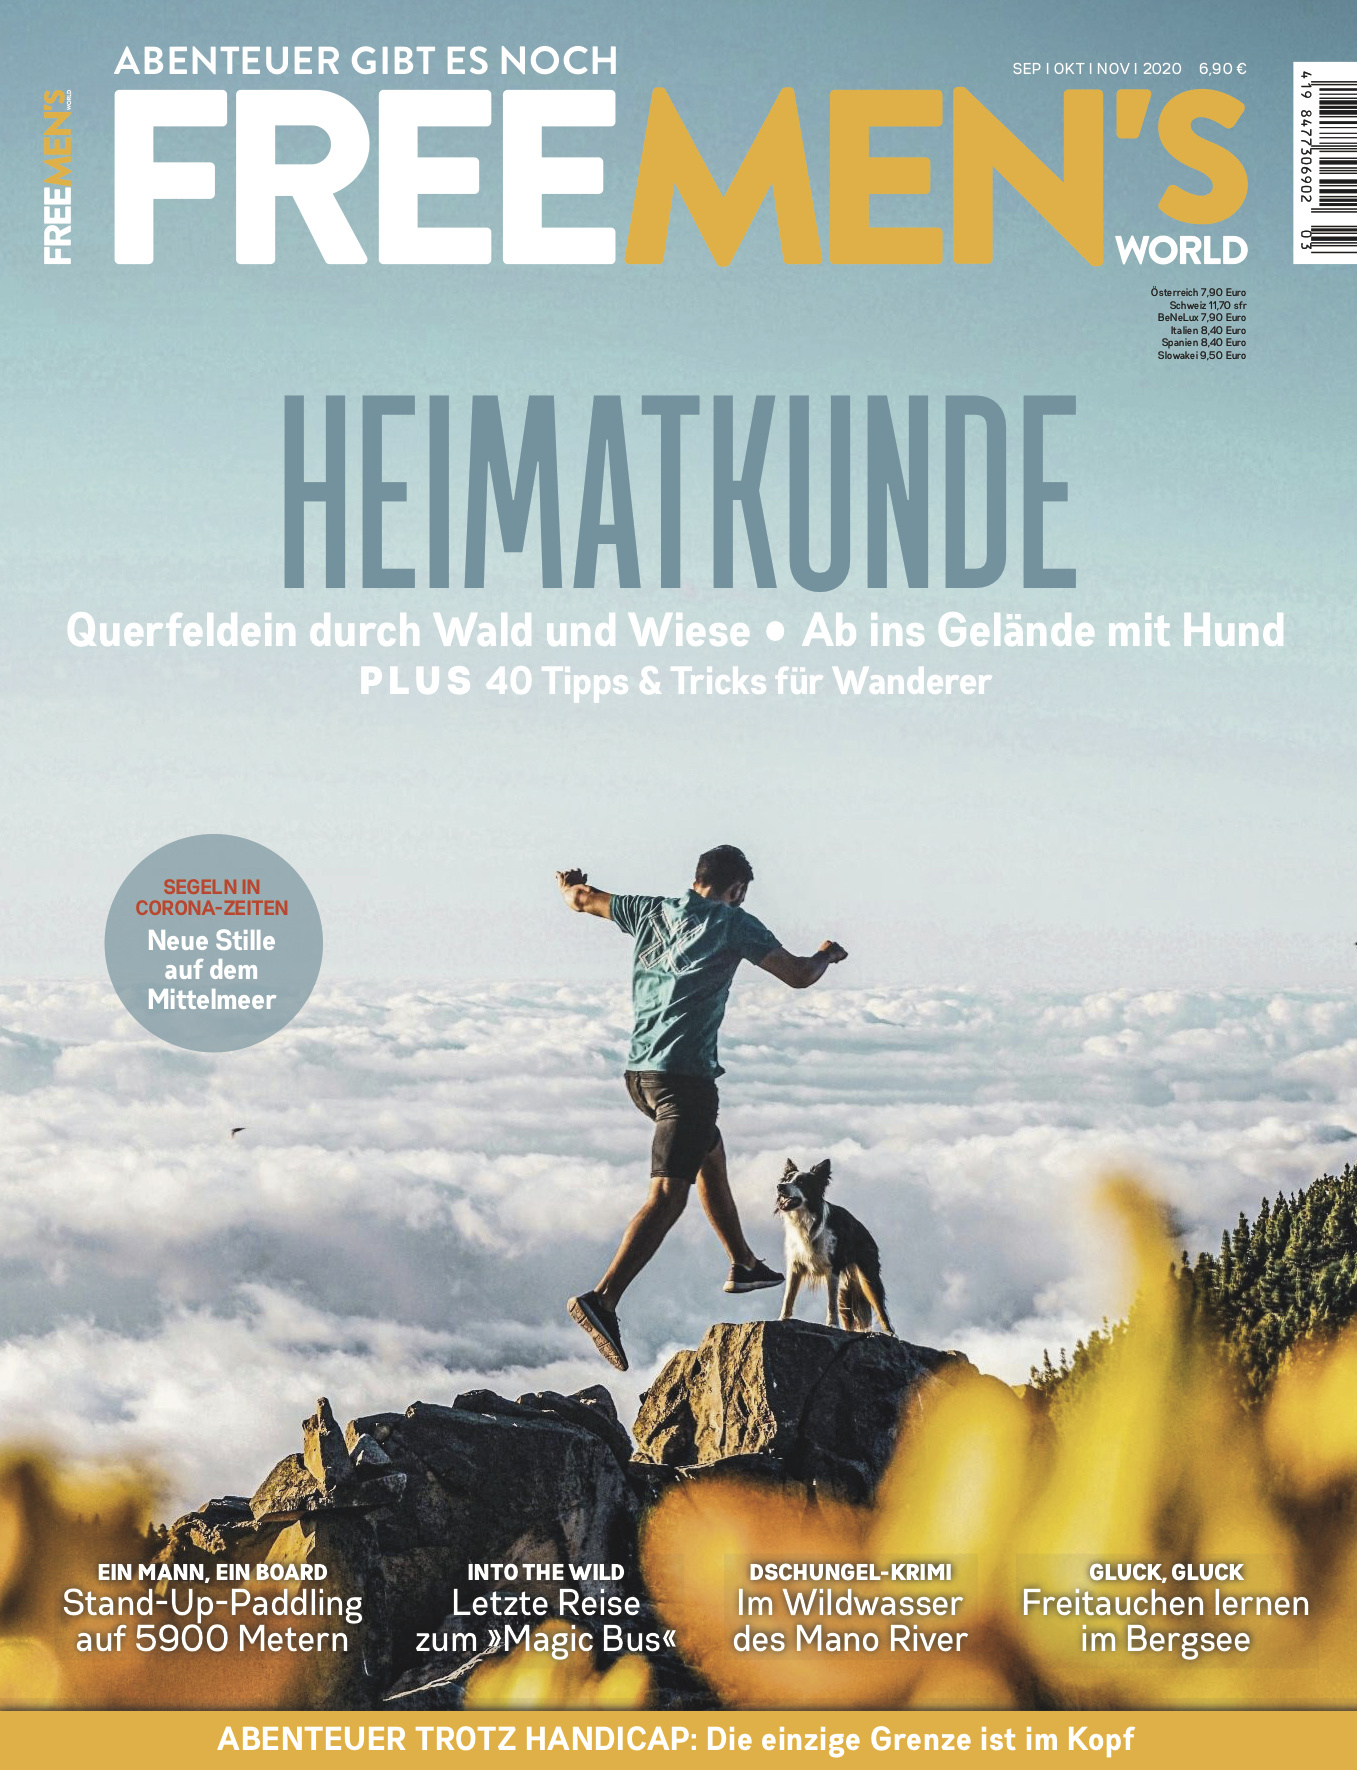 FREE MEN'S WORLD FREE MEN'S WORLD - Heimatkunde